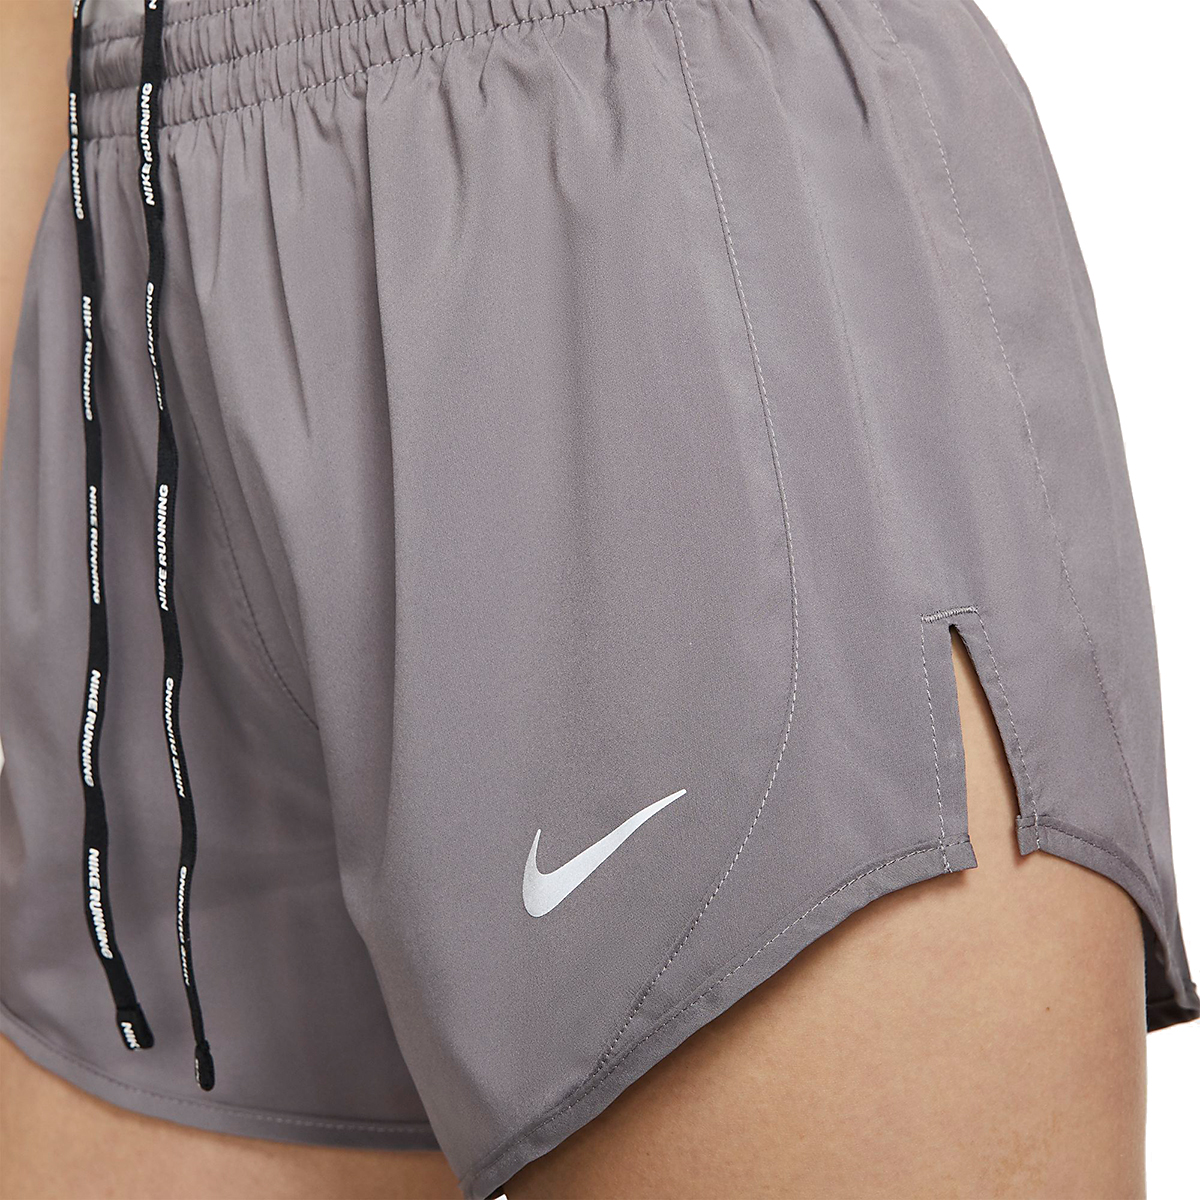 Women's Nike Tempo Luxe 3in Shorts - Color: Gunsmoke/Atmosphere Grey - Size: XS, Gunsmoke/Atmosphere Grey, large, image 3